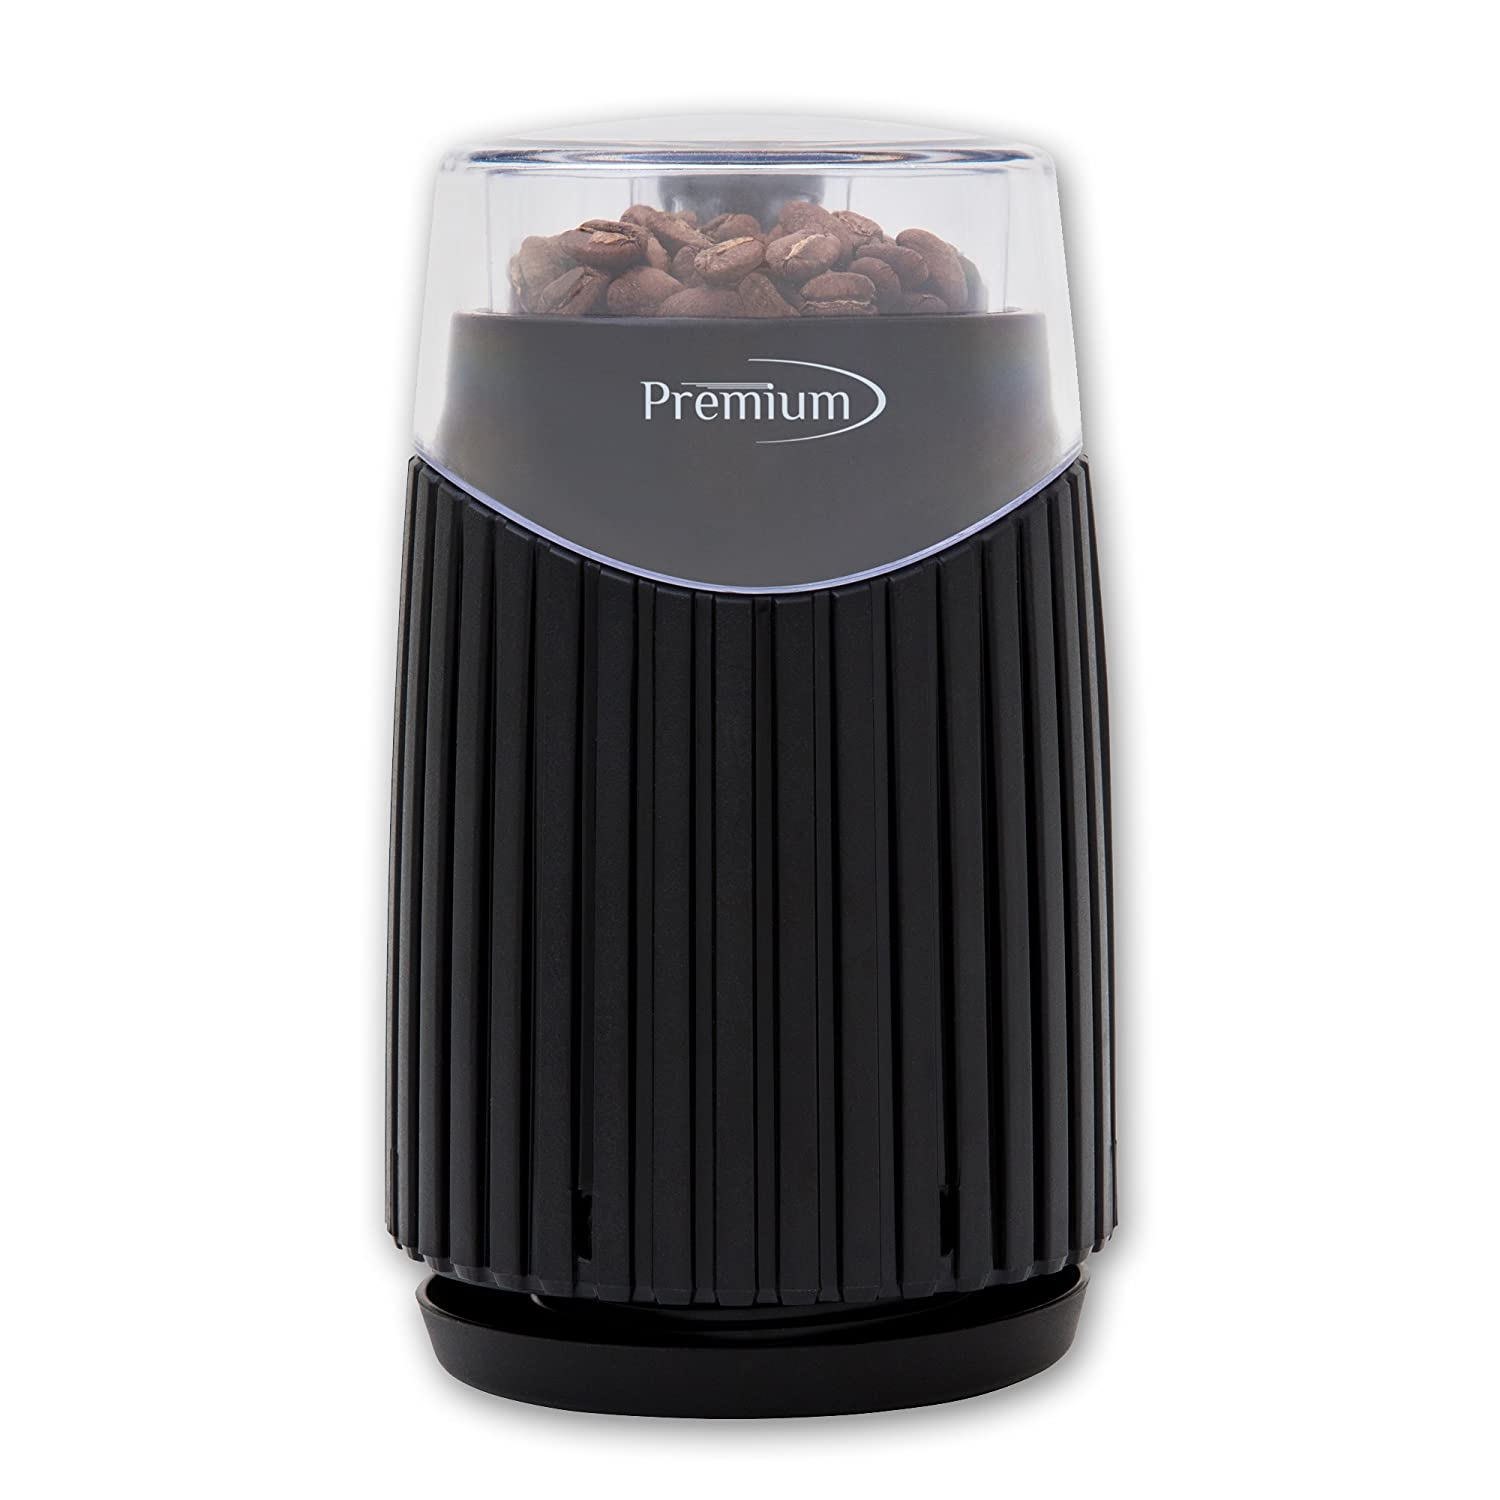 Premium Electric Coffee Grinder with stainless steel blade with durable stainless steel bowl 1.8 Oz